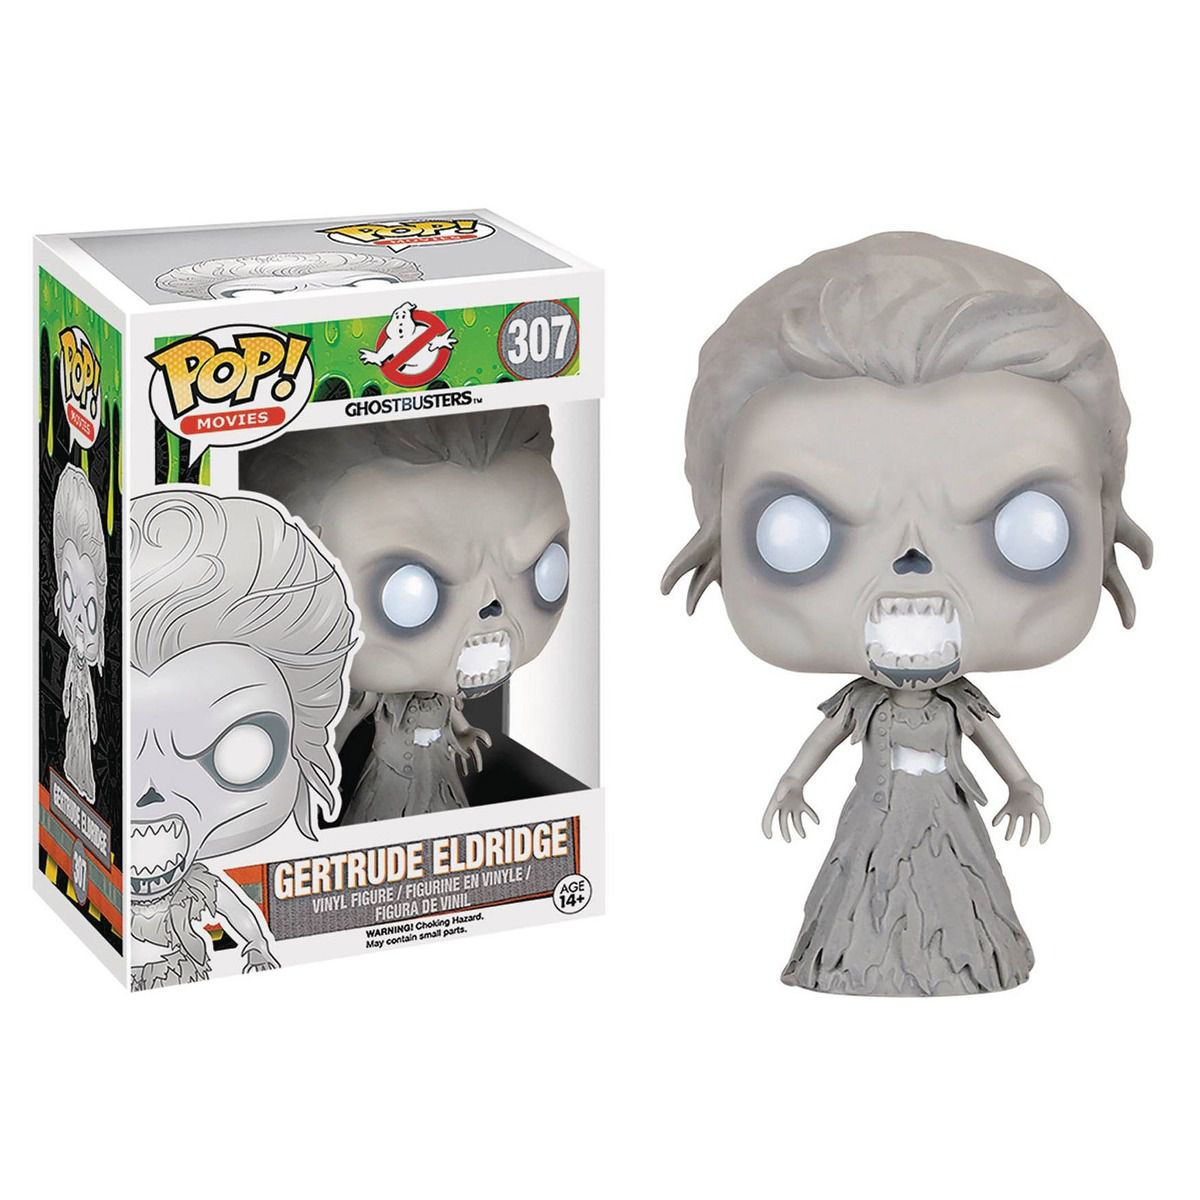 POP FUNKO 307 GERTRUDE ELDRIDGE GHOSTBUSTER